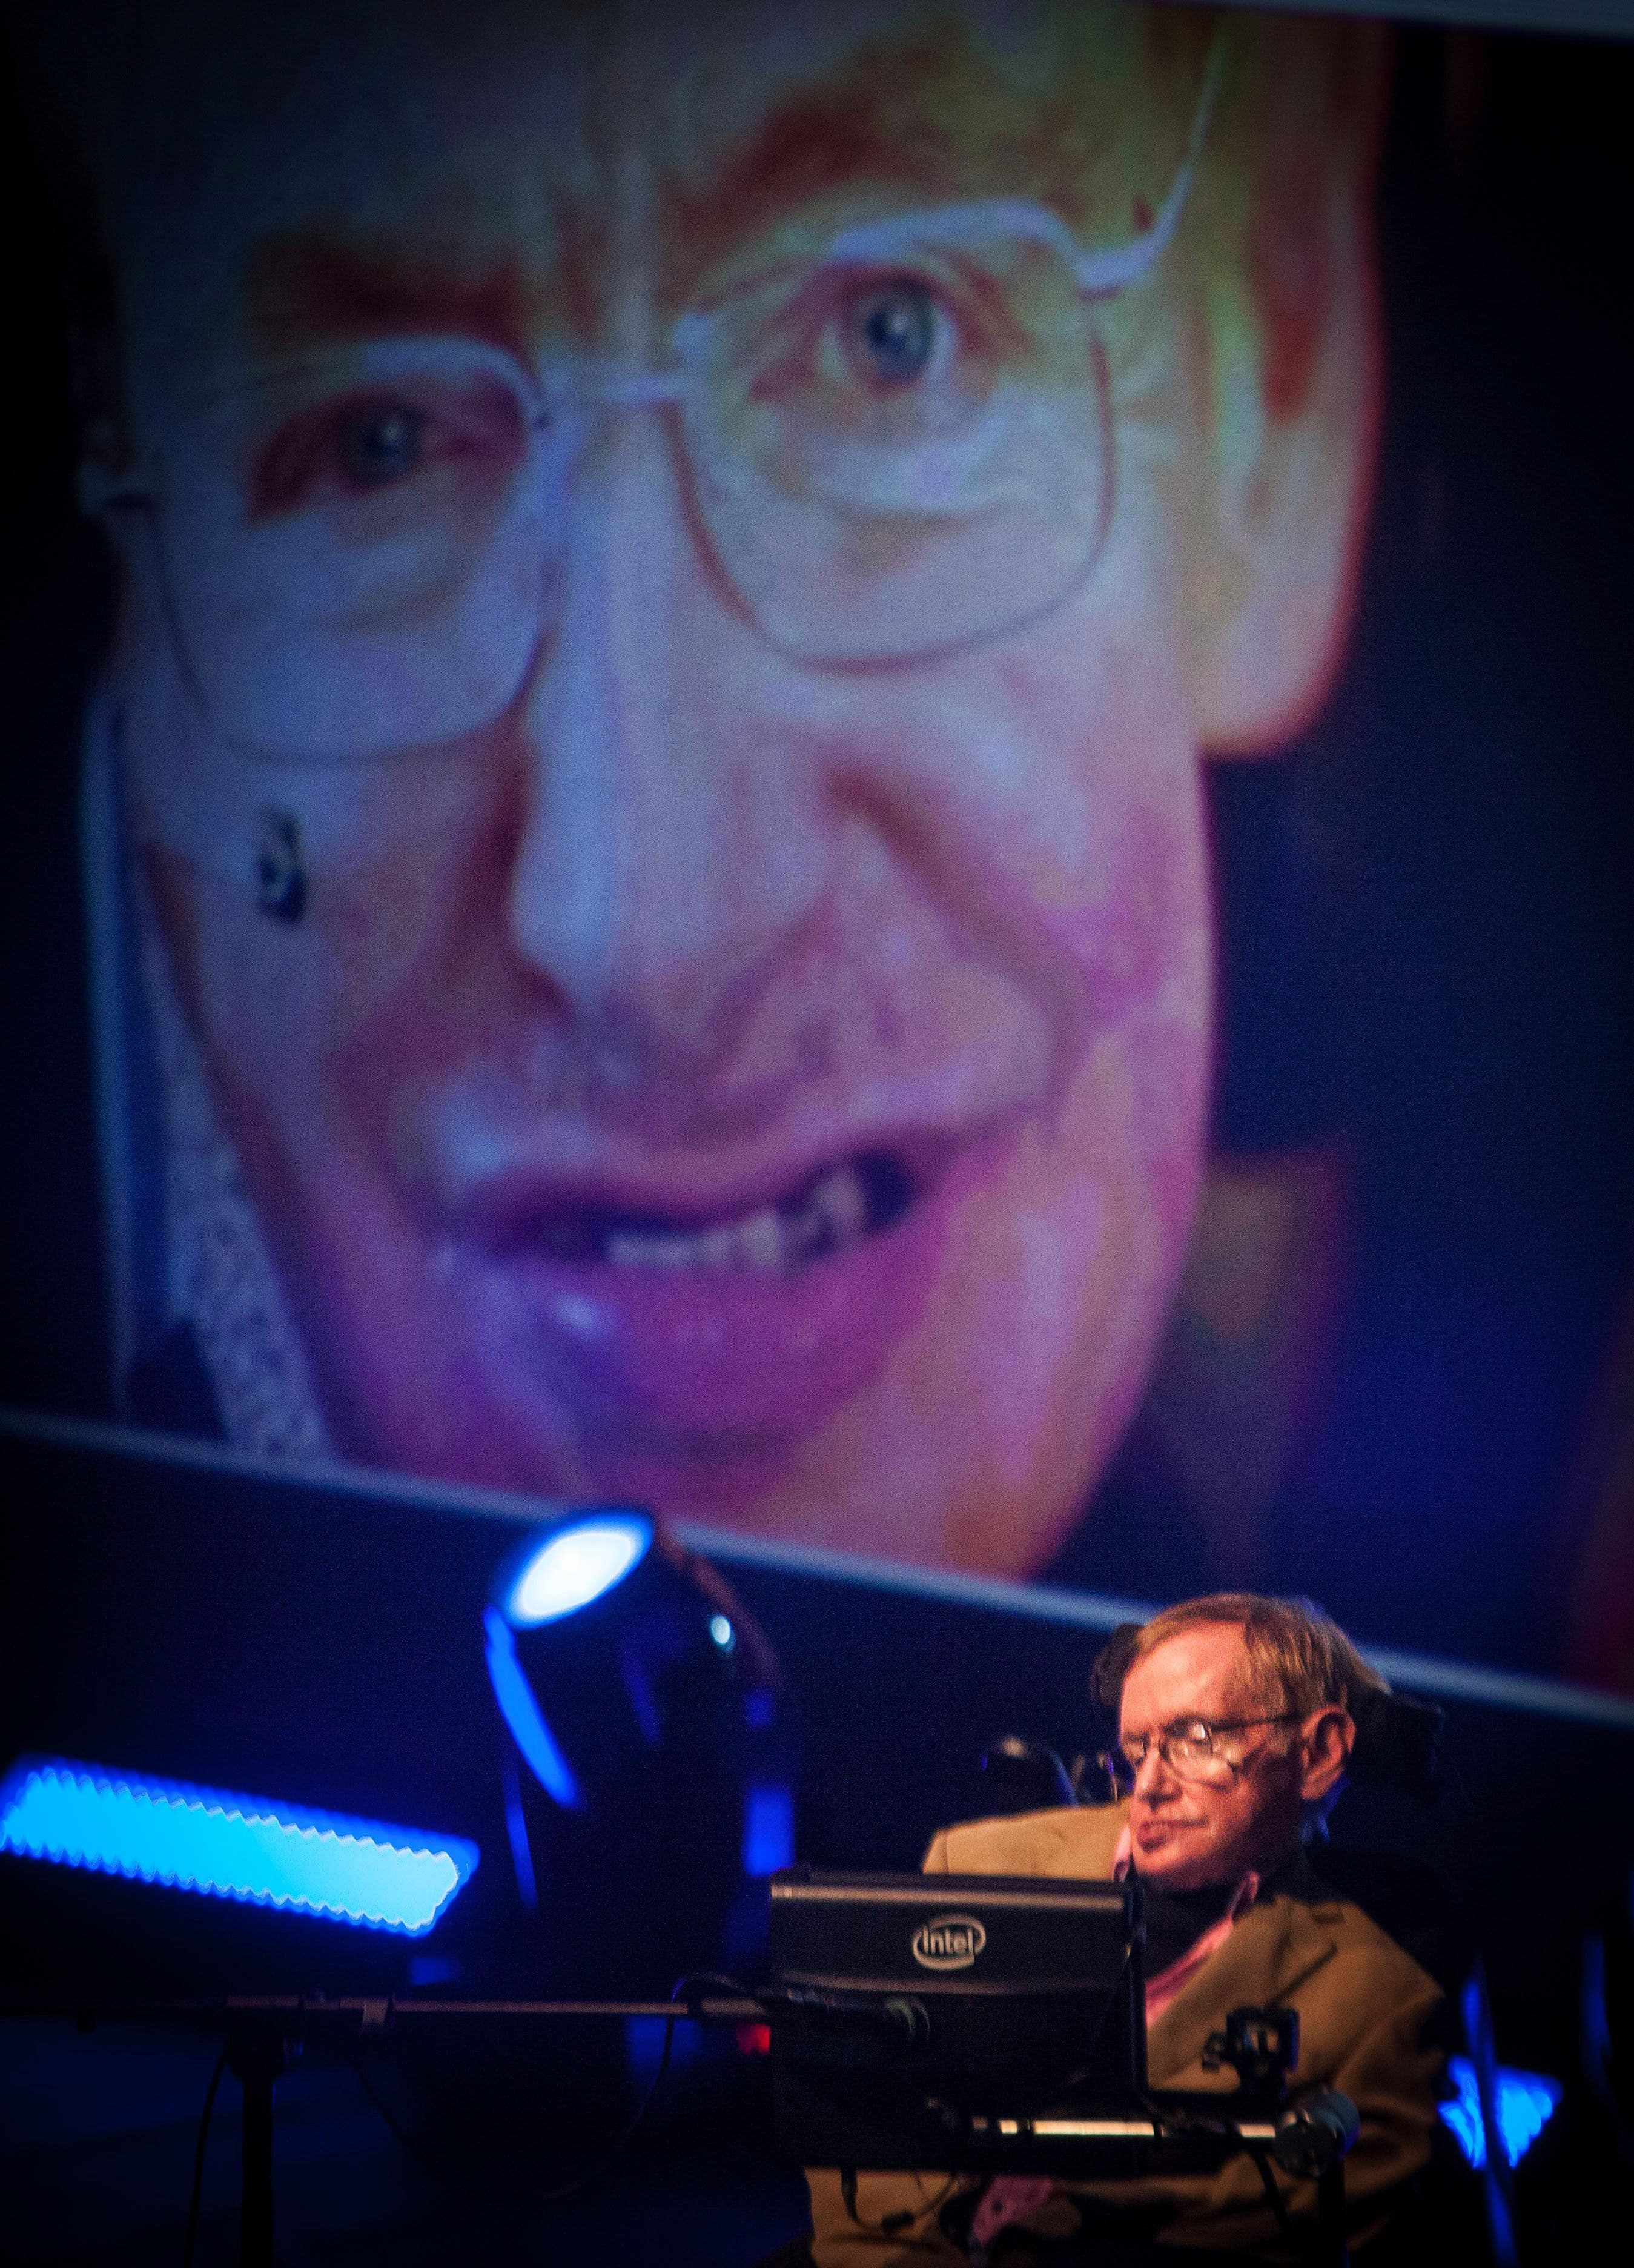 Hawking gives a lecture during the Starmus Festival on the Spanish Canary island of Tenerife on September 23, 2014. — AFP